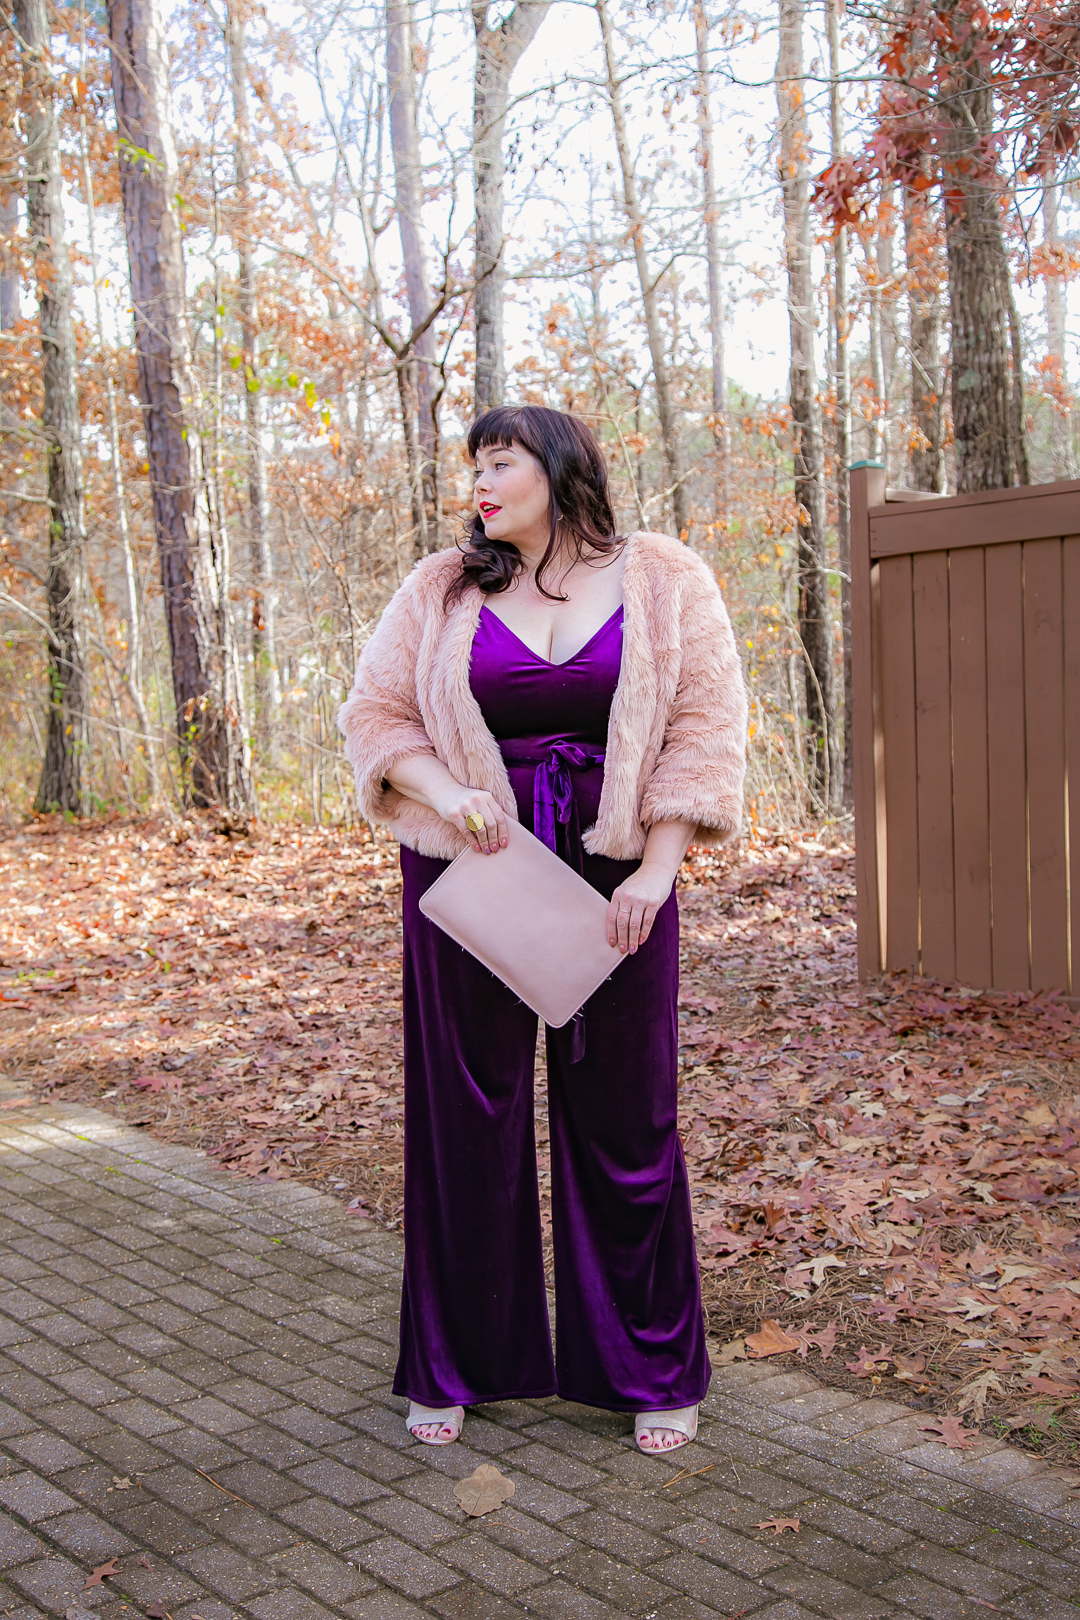 Plus Size Model, Amber McCulloch, Plus Size Blogger, Style Plus Curves